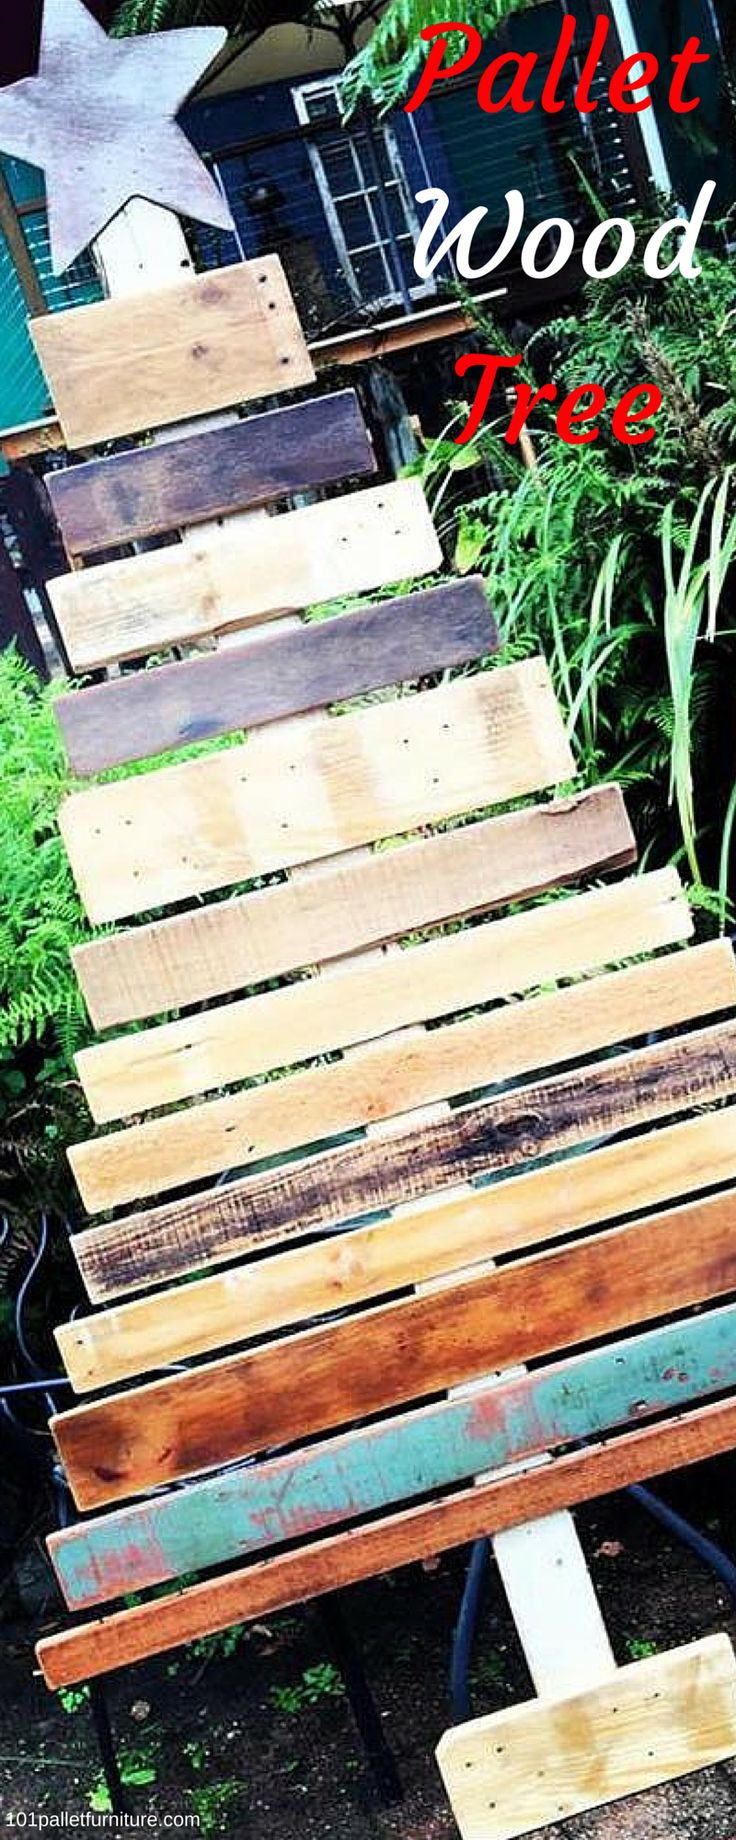 Trees Made from Pallets - 100% Recycled Pallet wood!